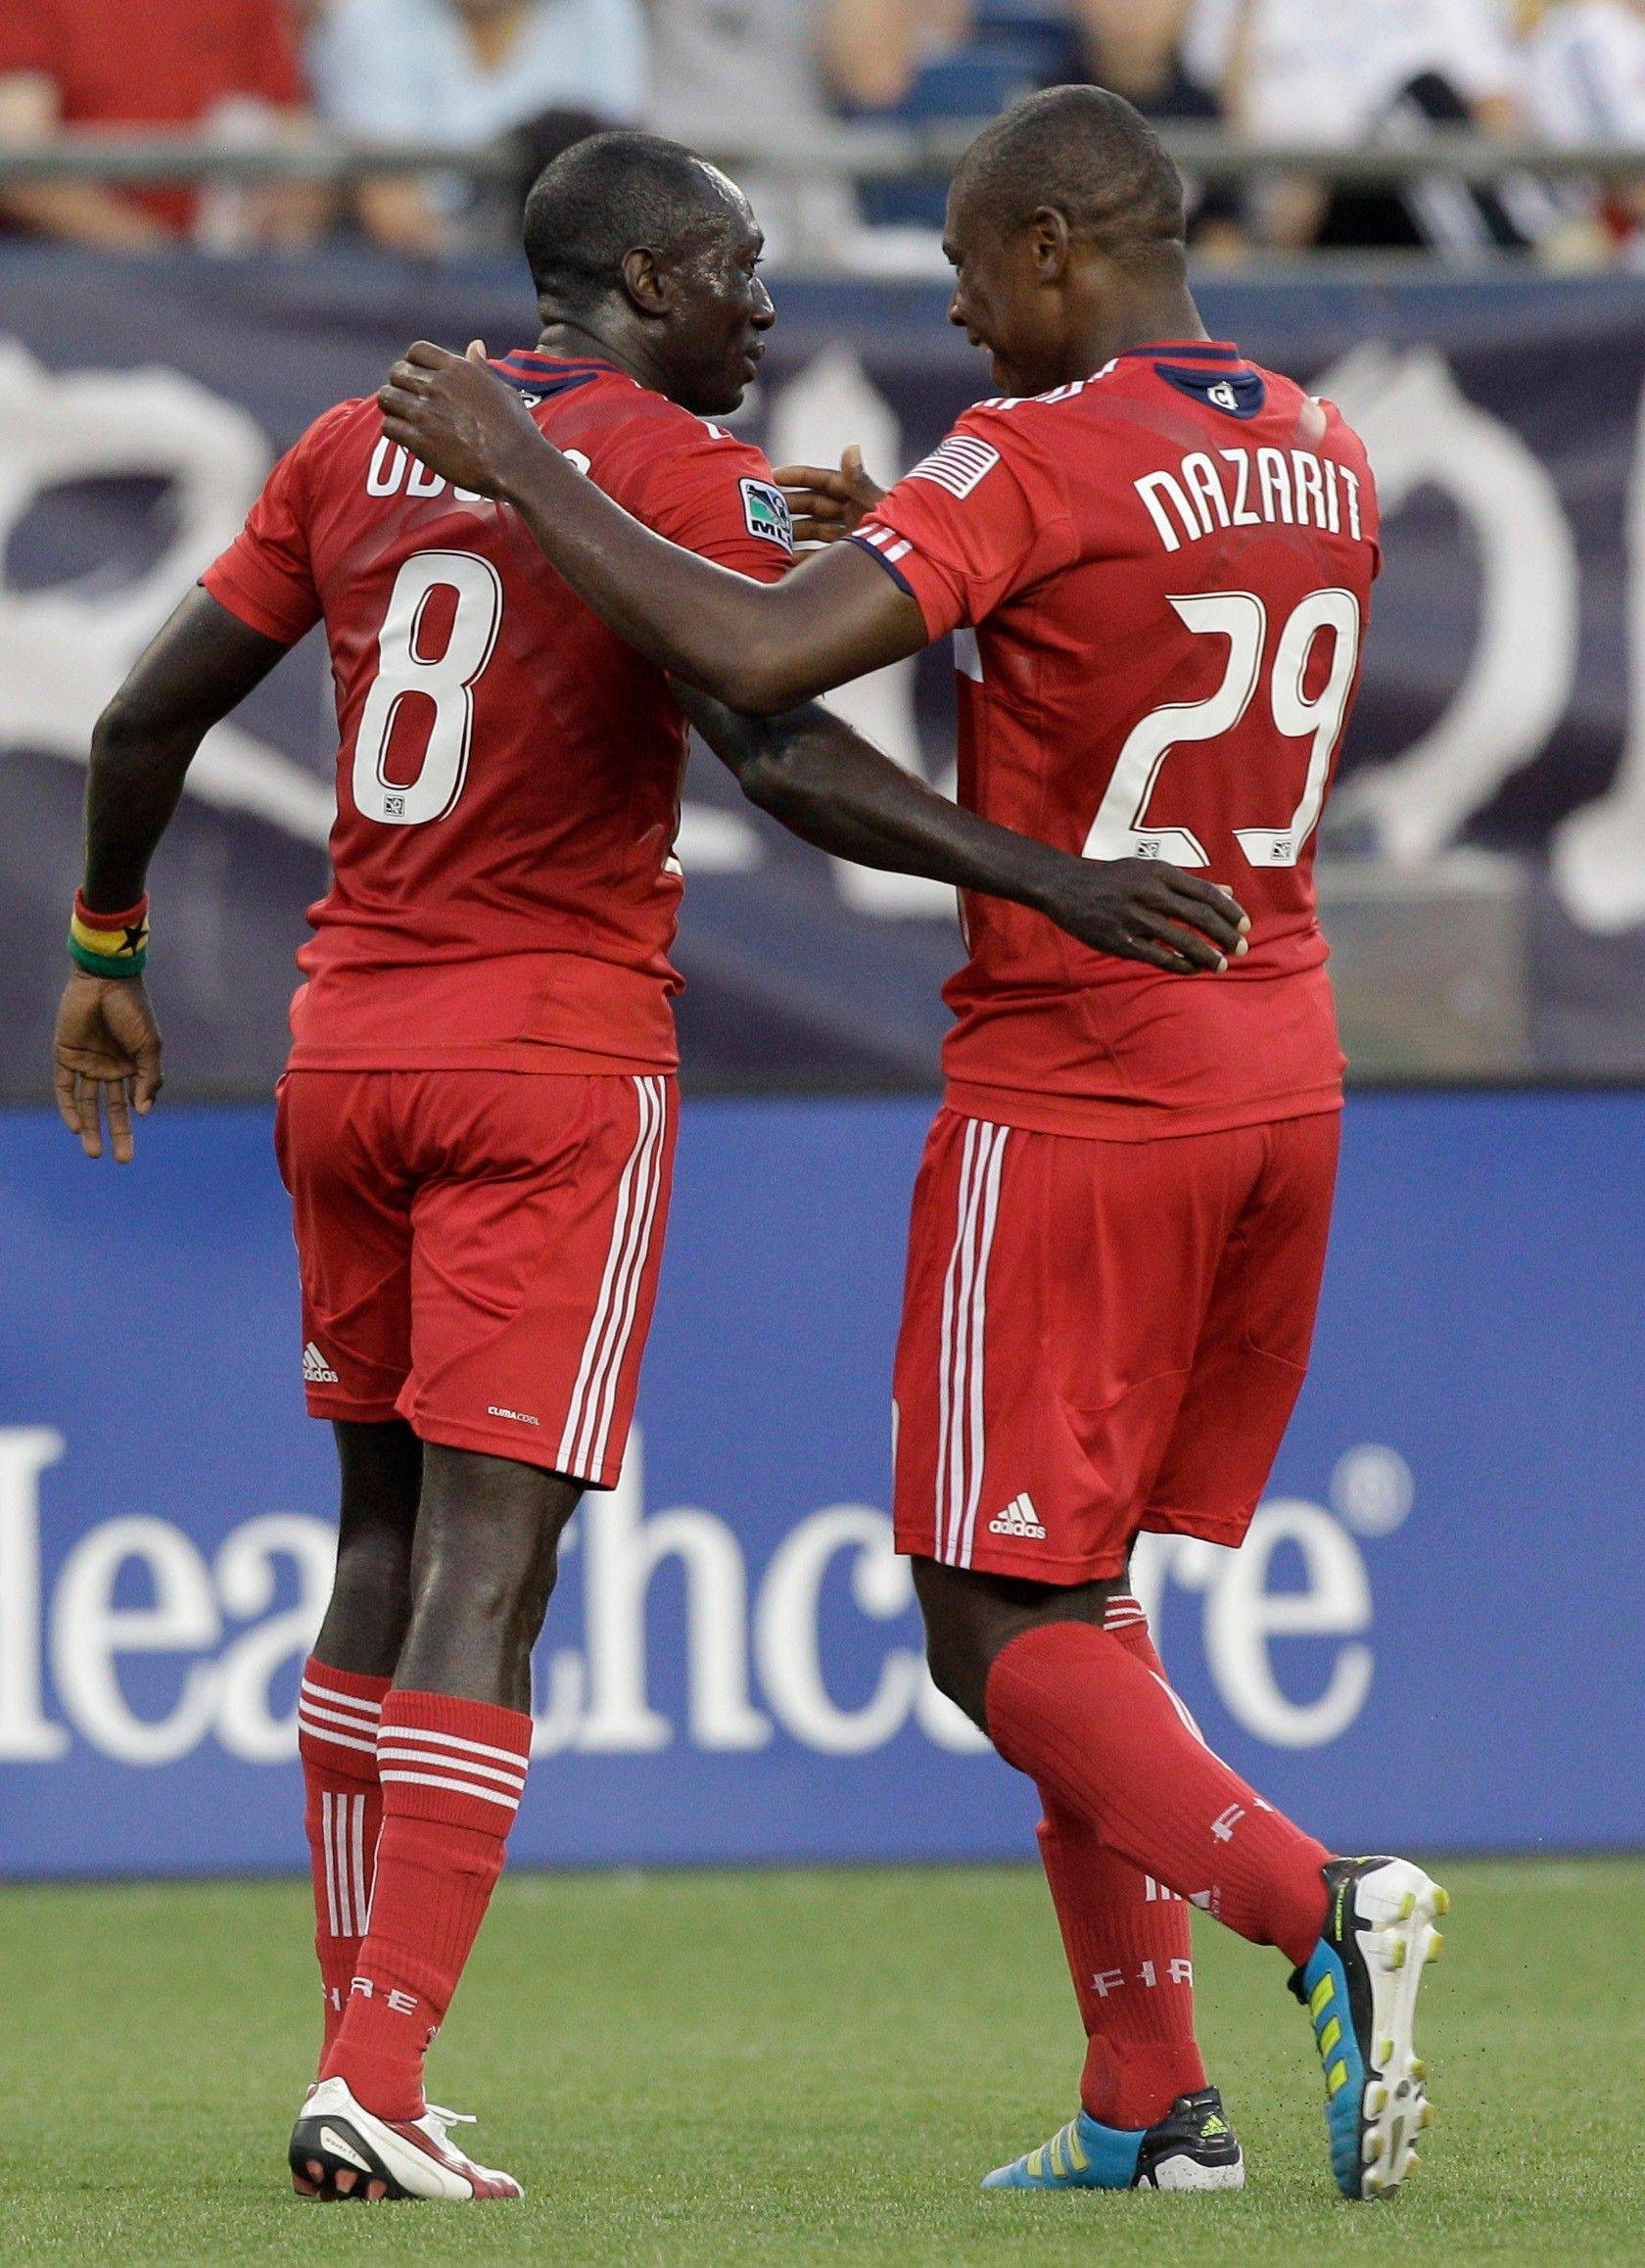 Chicago Fire midfielder Dominic Oduro has a chance to become the Fire's first player to score more than 10 goals since Damani Raplh in 2004.